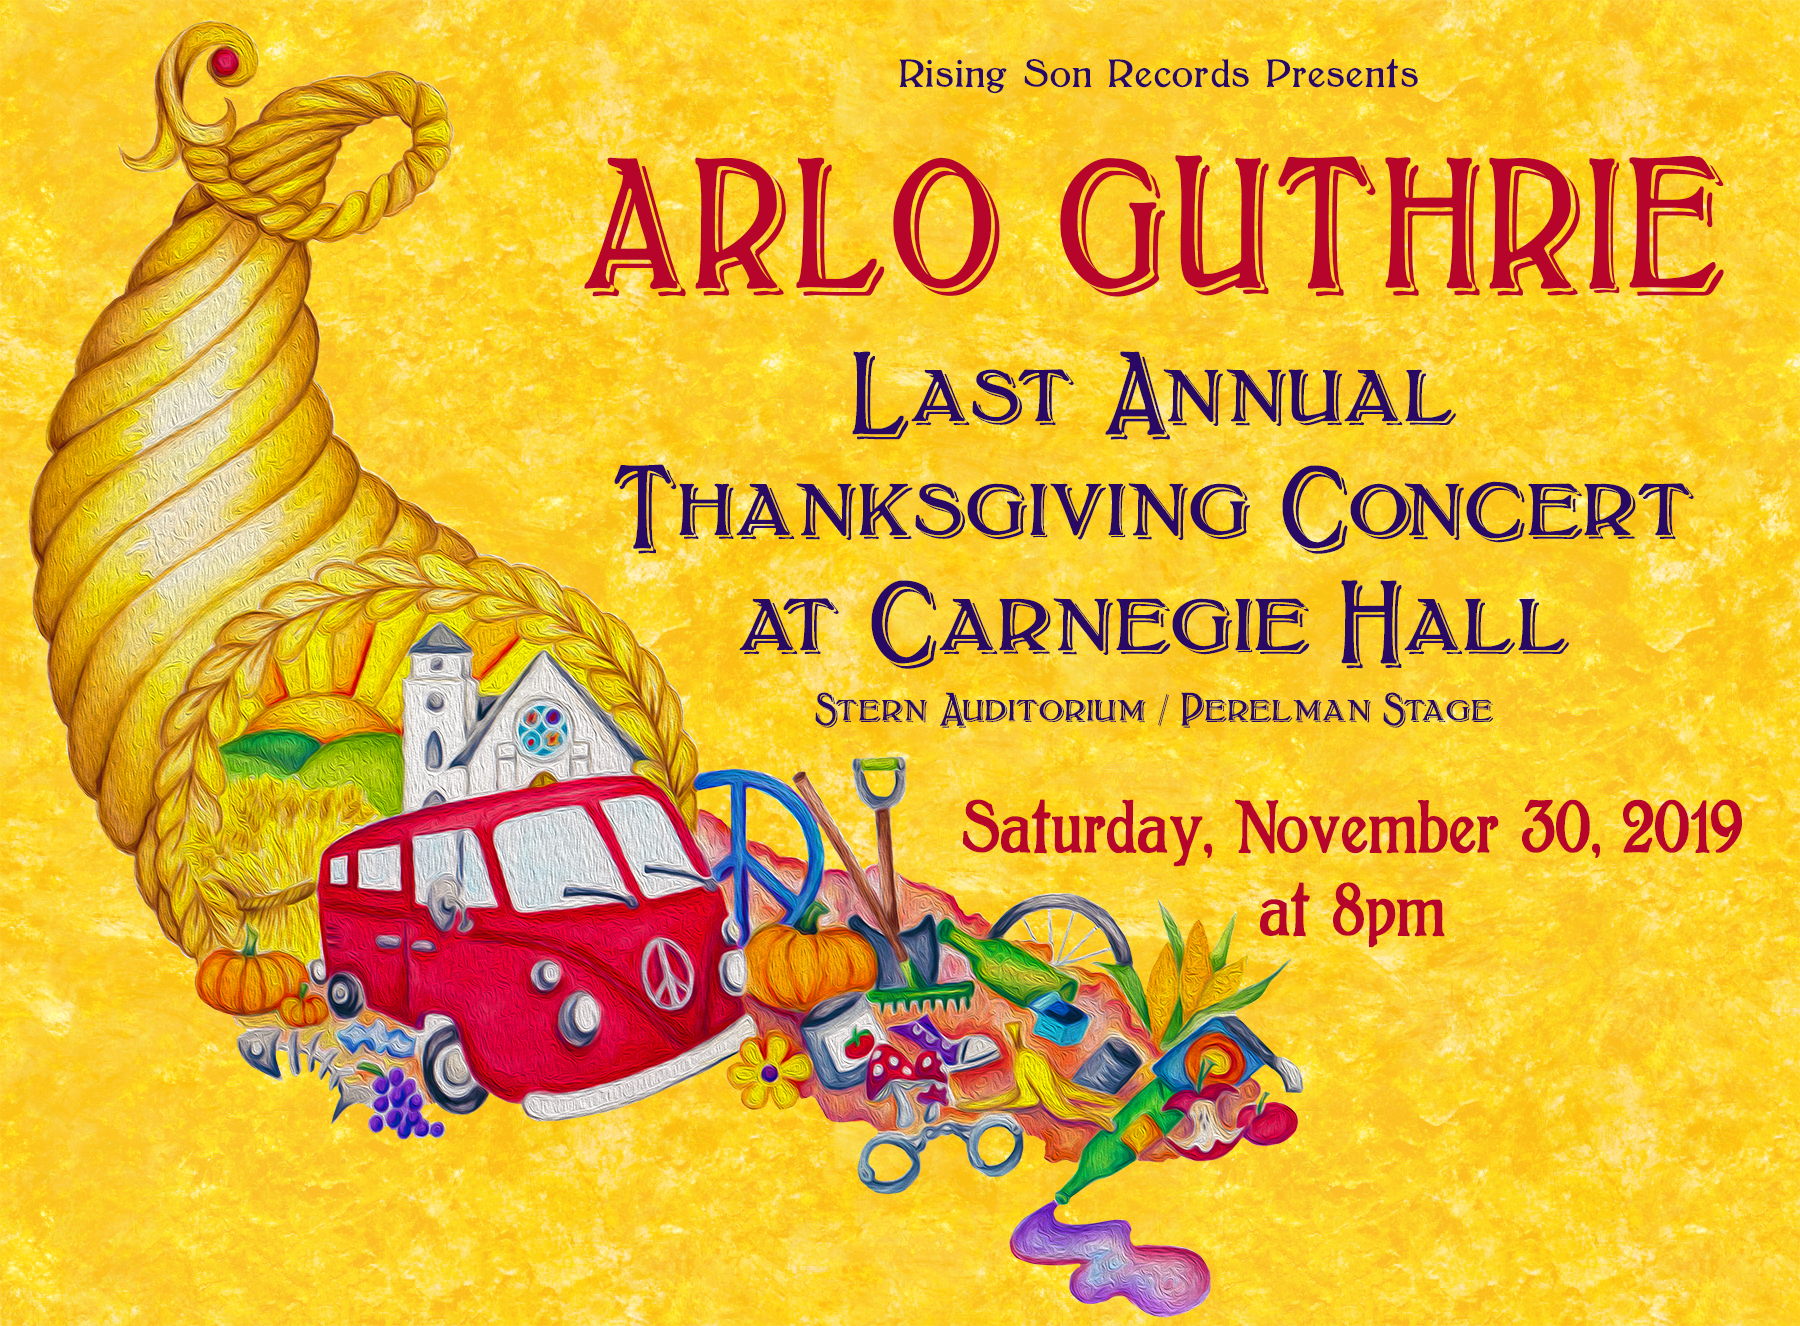 Arlo Guthrie's Last Annual Thanksgiving Concert at Carnegie Hall • Saturday, November 30, 2019